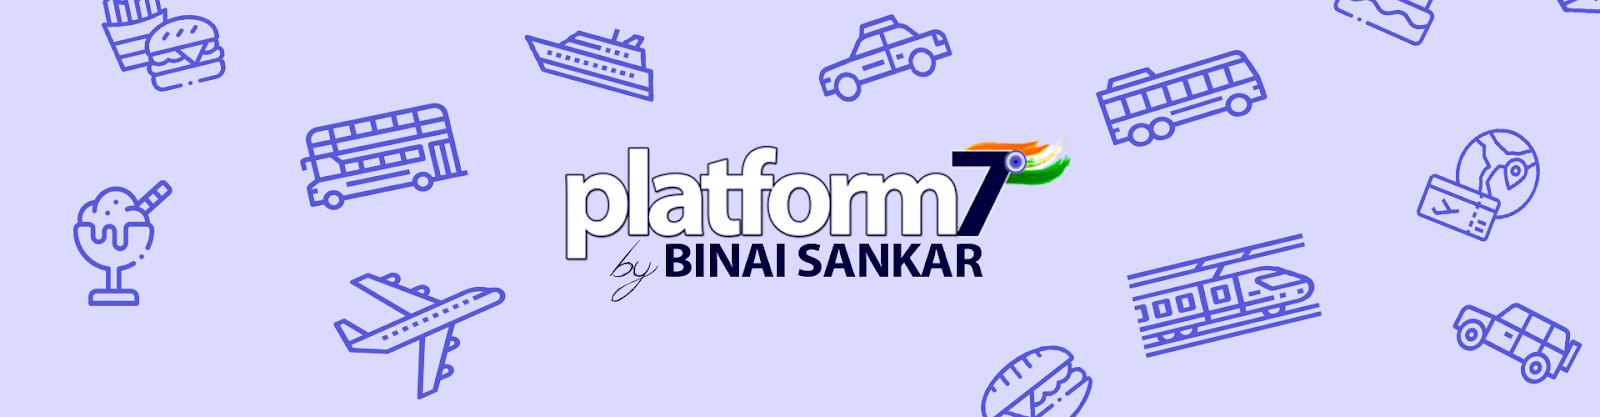 Platform7 by Binai Sankar